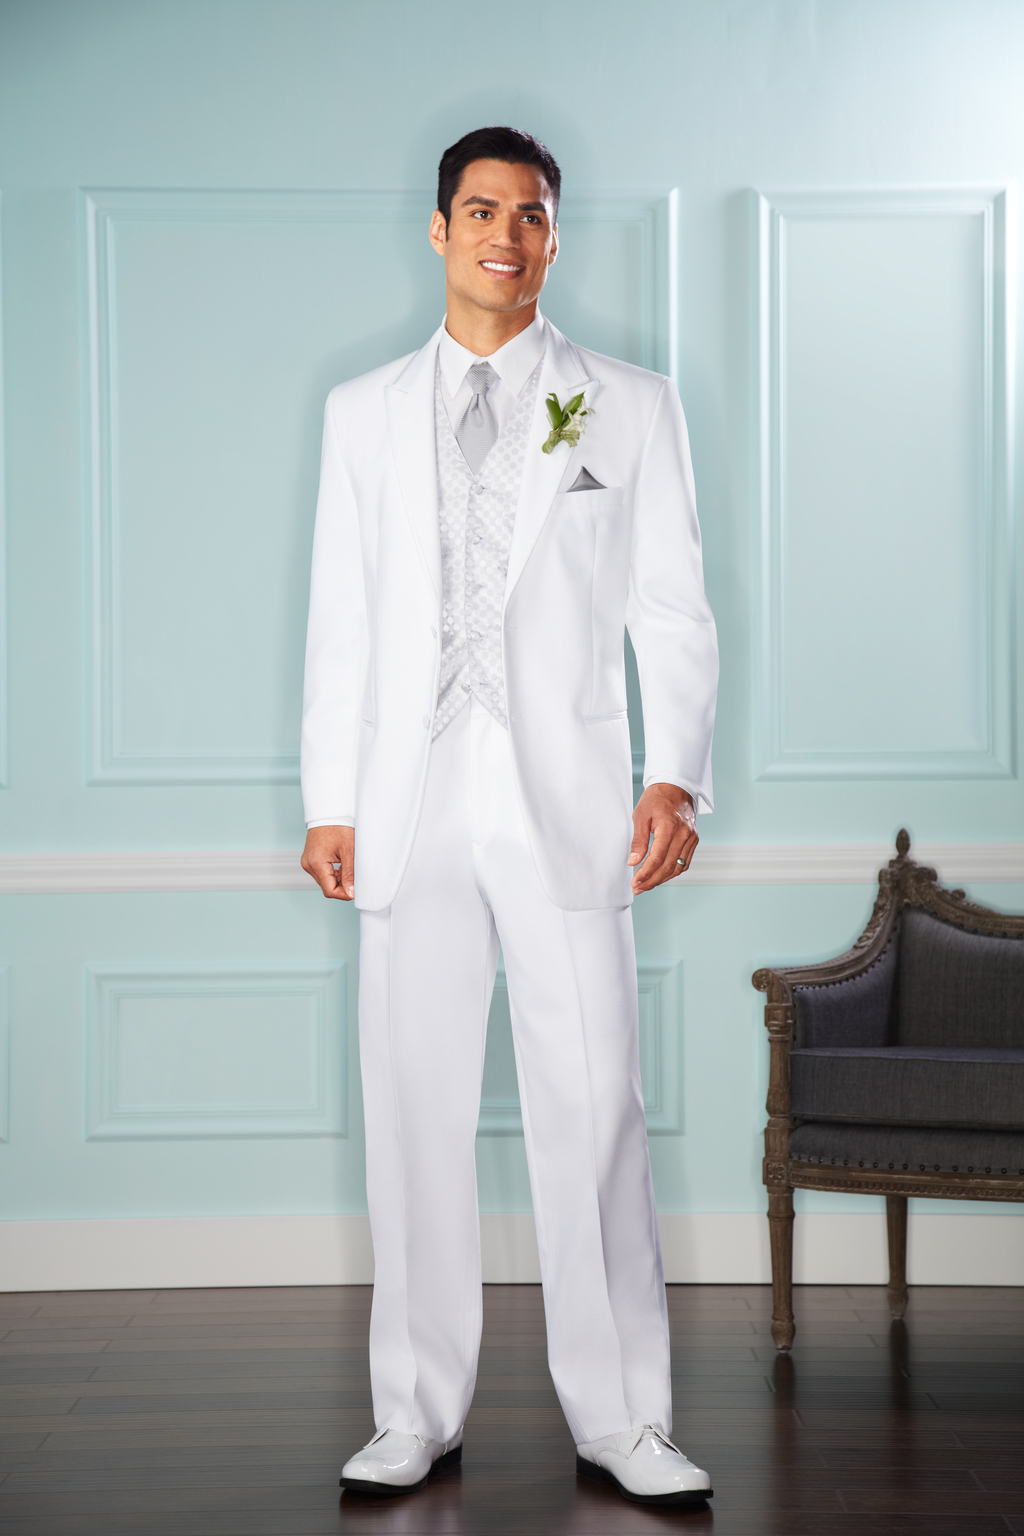 Stunning Casual Wedding Outfit For Men Ideas - Wedding Ideas ...